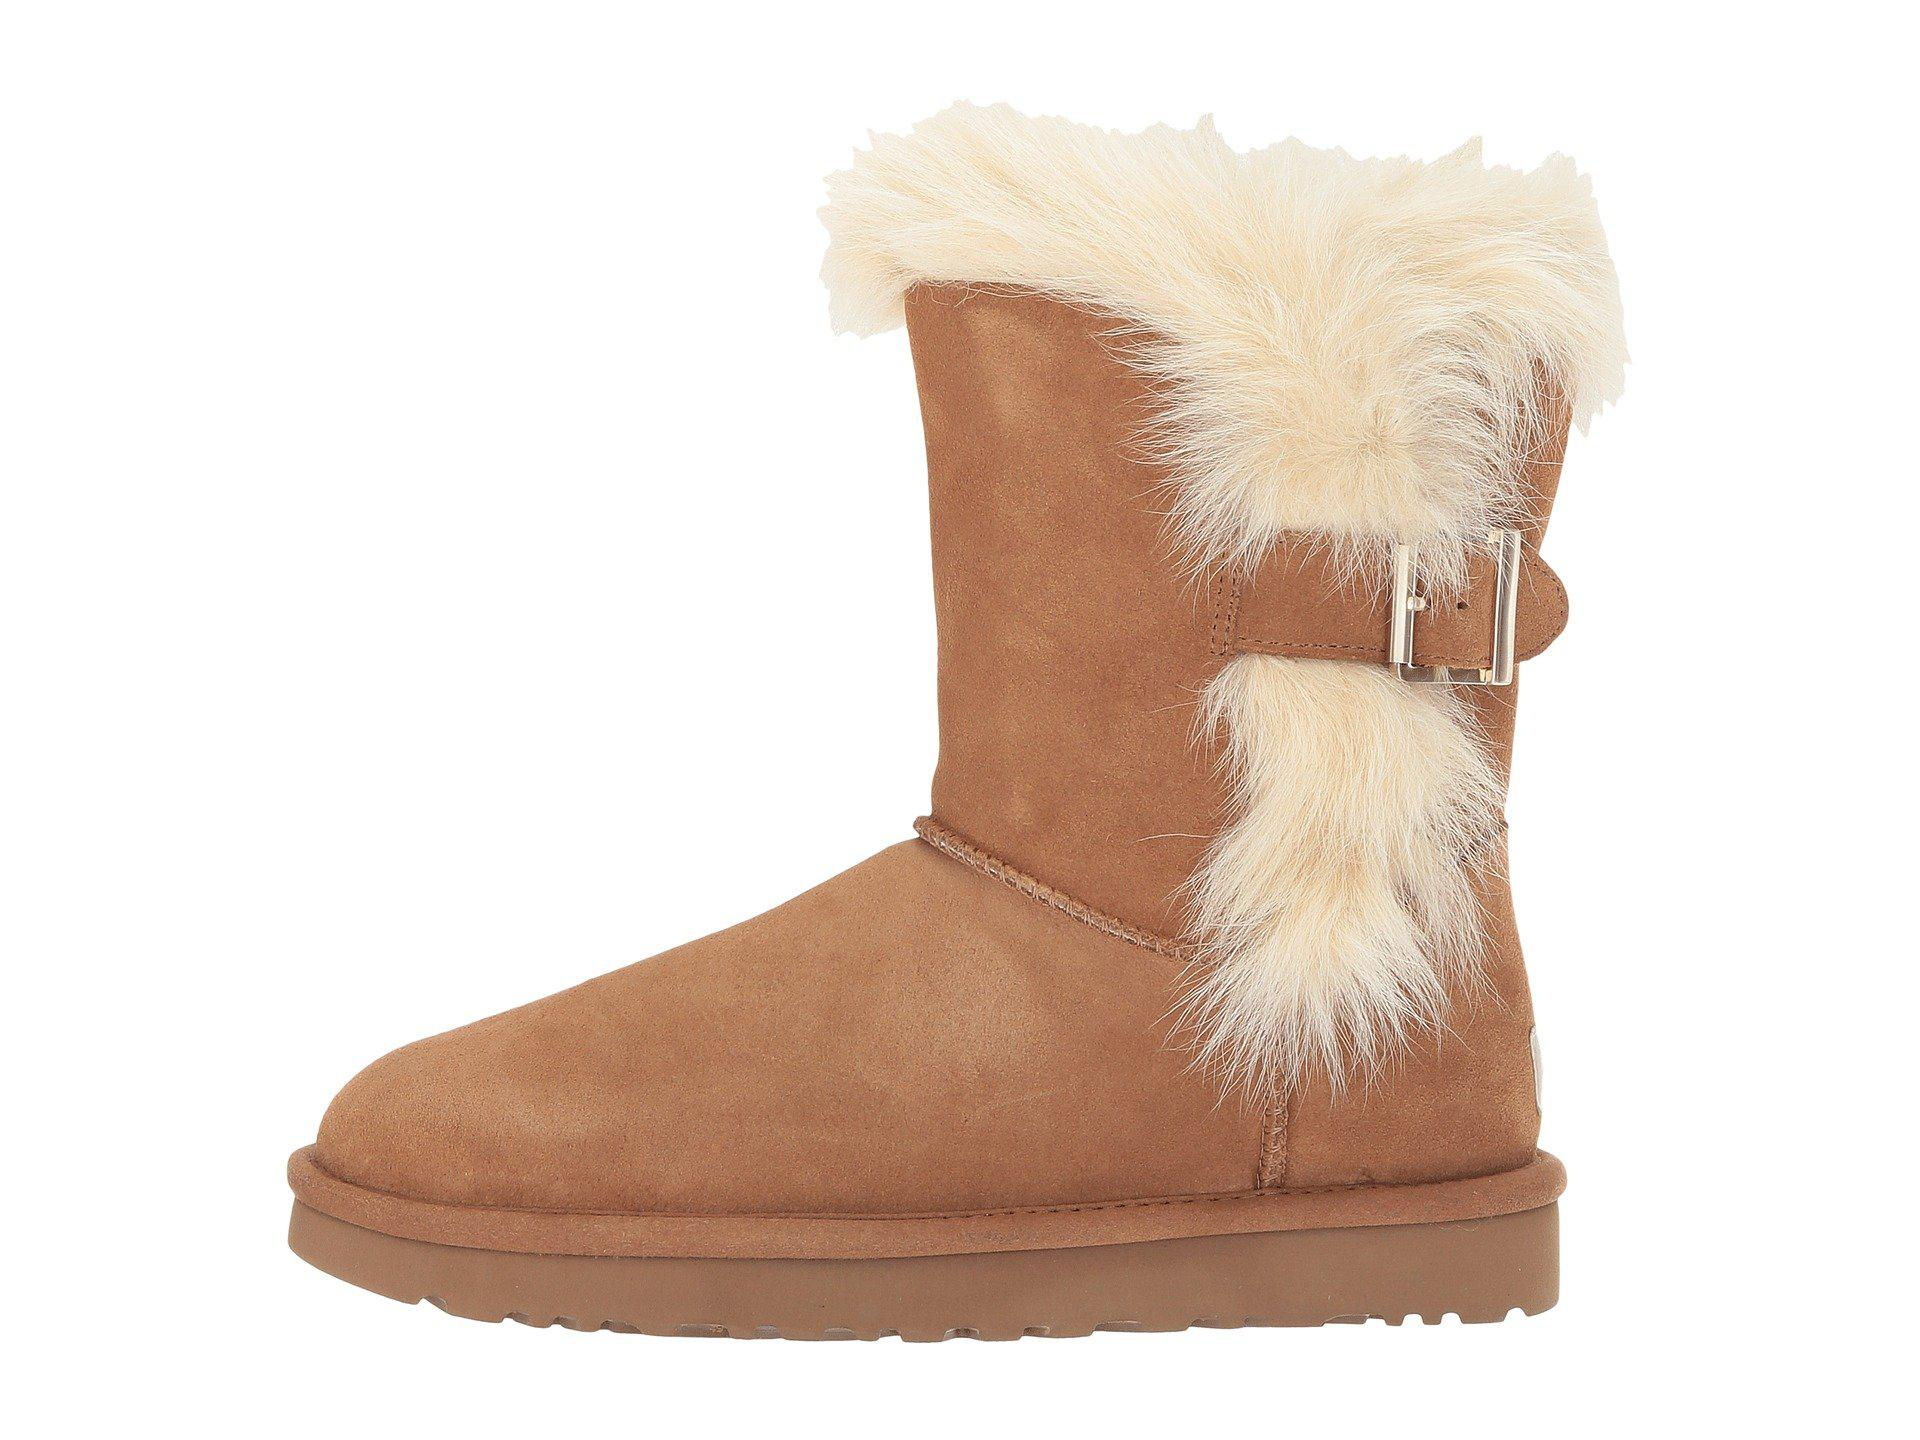 2a980bdaa44 Lyst - UGG Deena (chestnut) Women's Cold Weather Boots in Brown